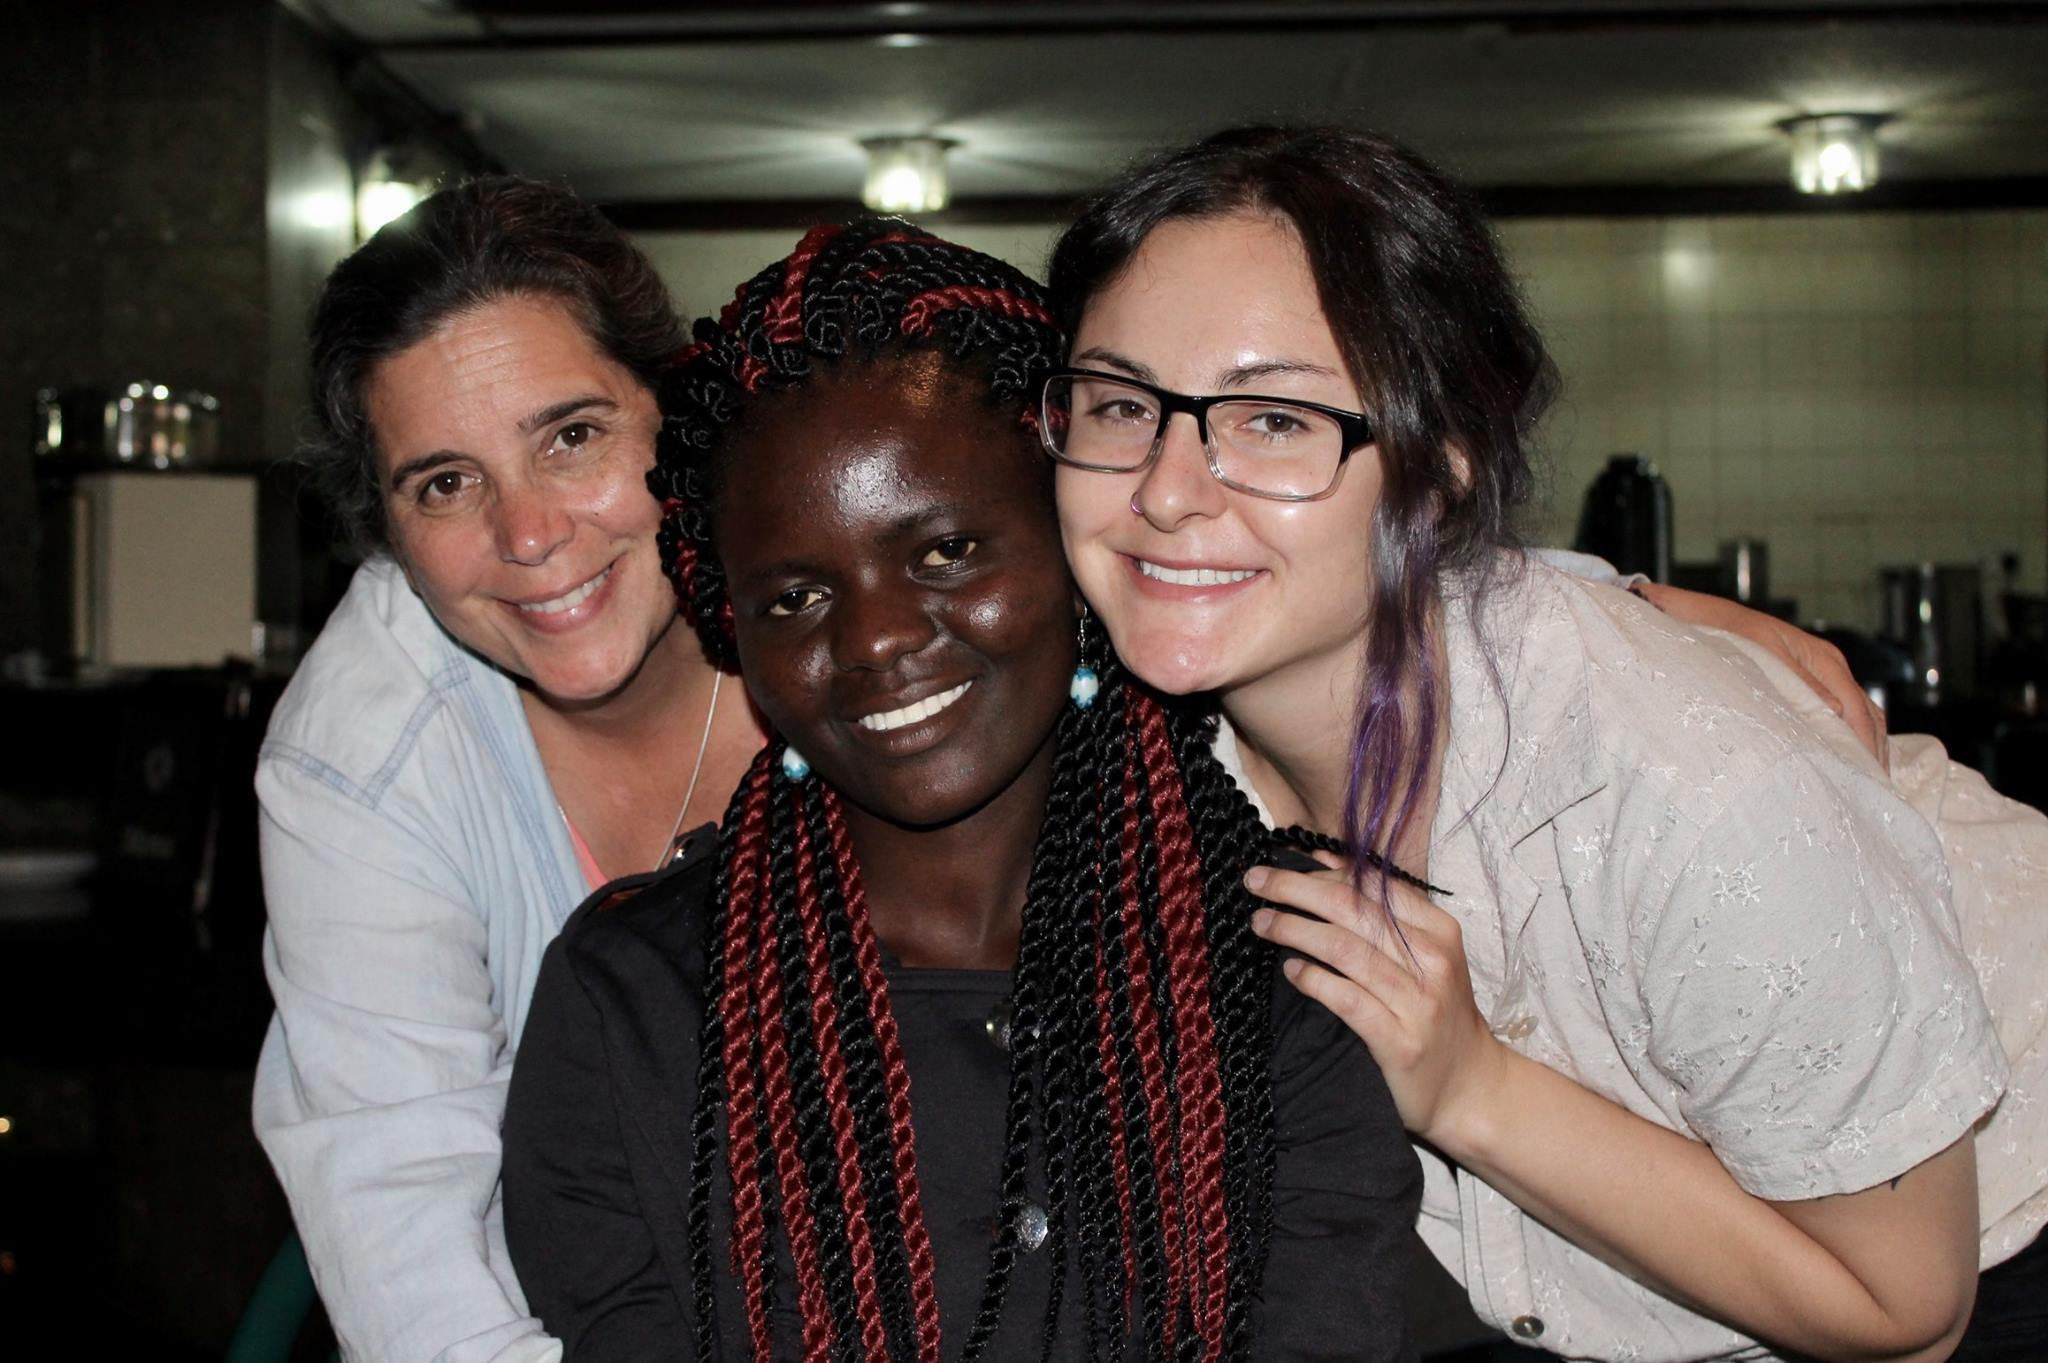 Esther, Livingstone's sister, came with us to Nairobi. There, Brooke and Melissa accompanied her while she got her hair done.